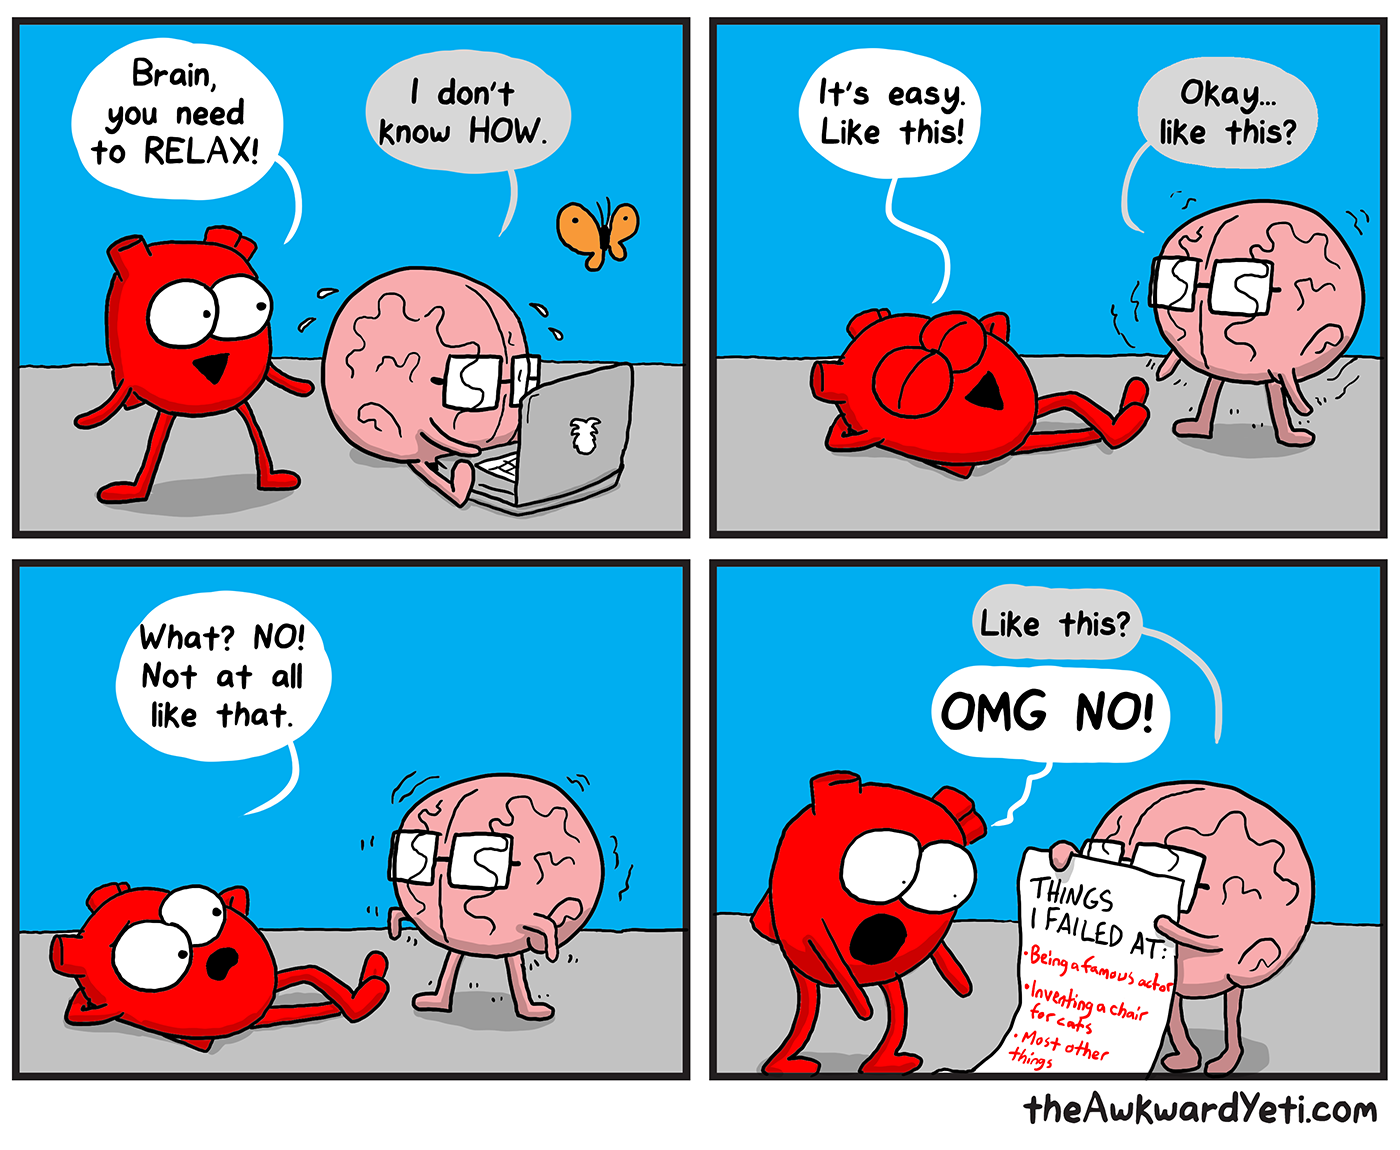 Brain tries to relax